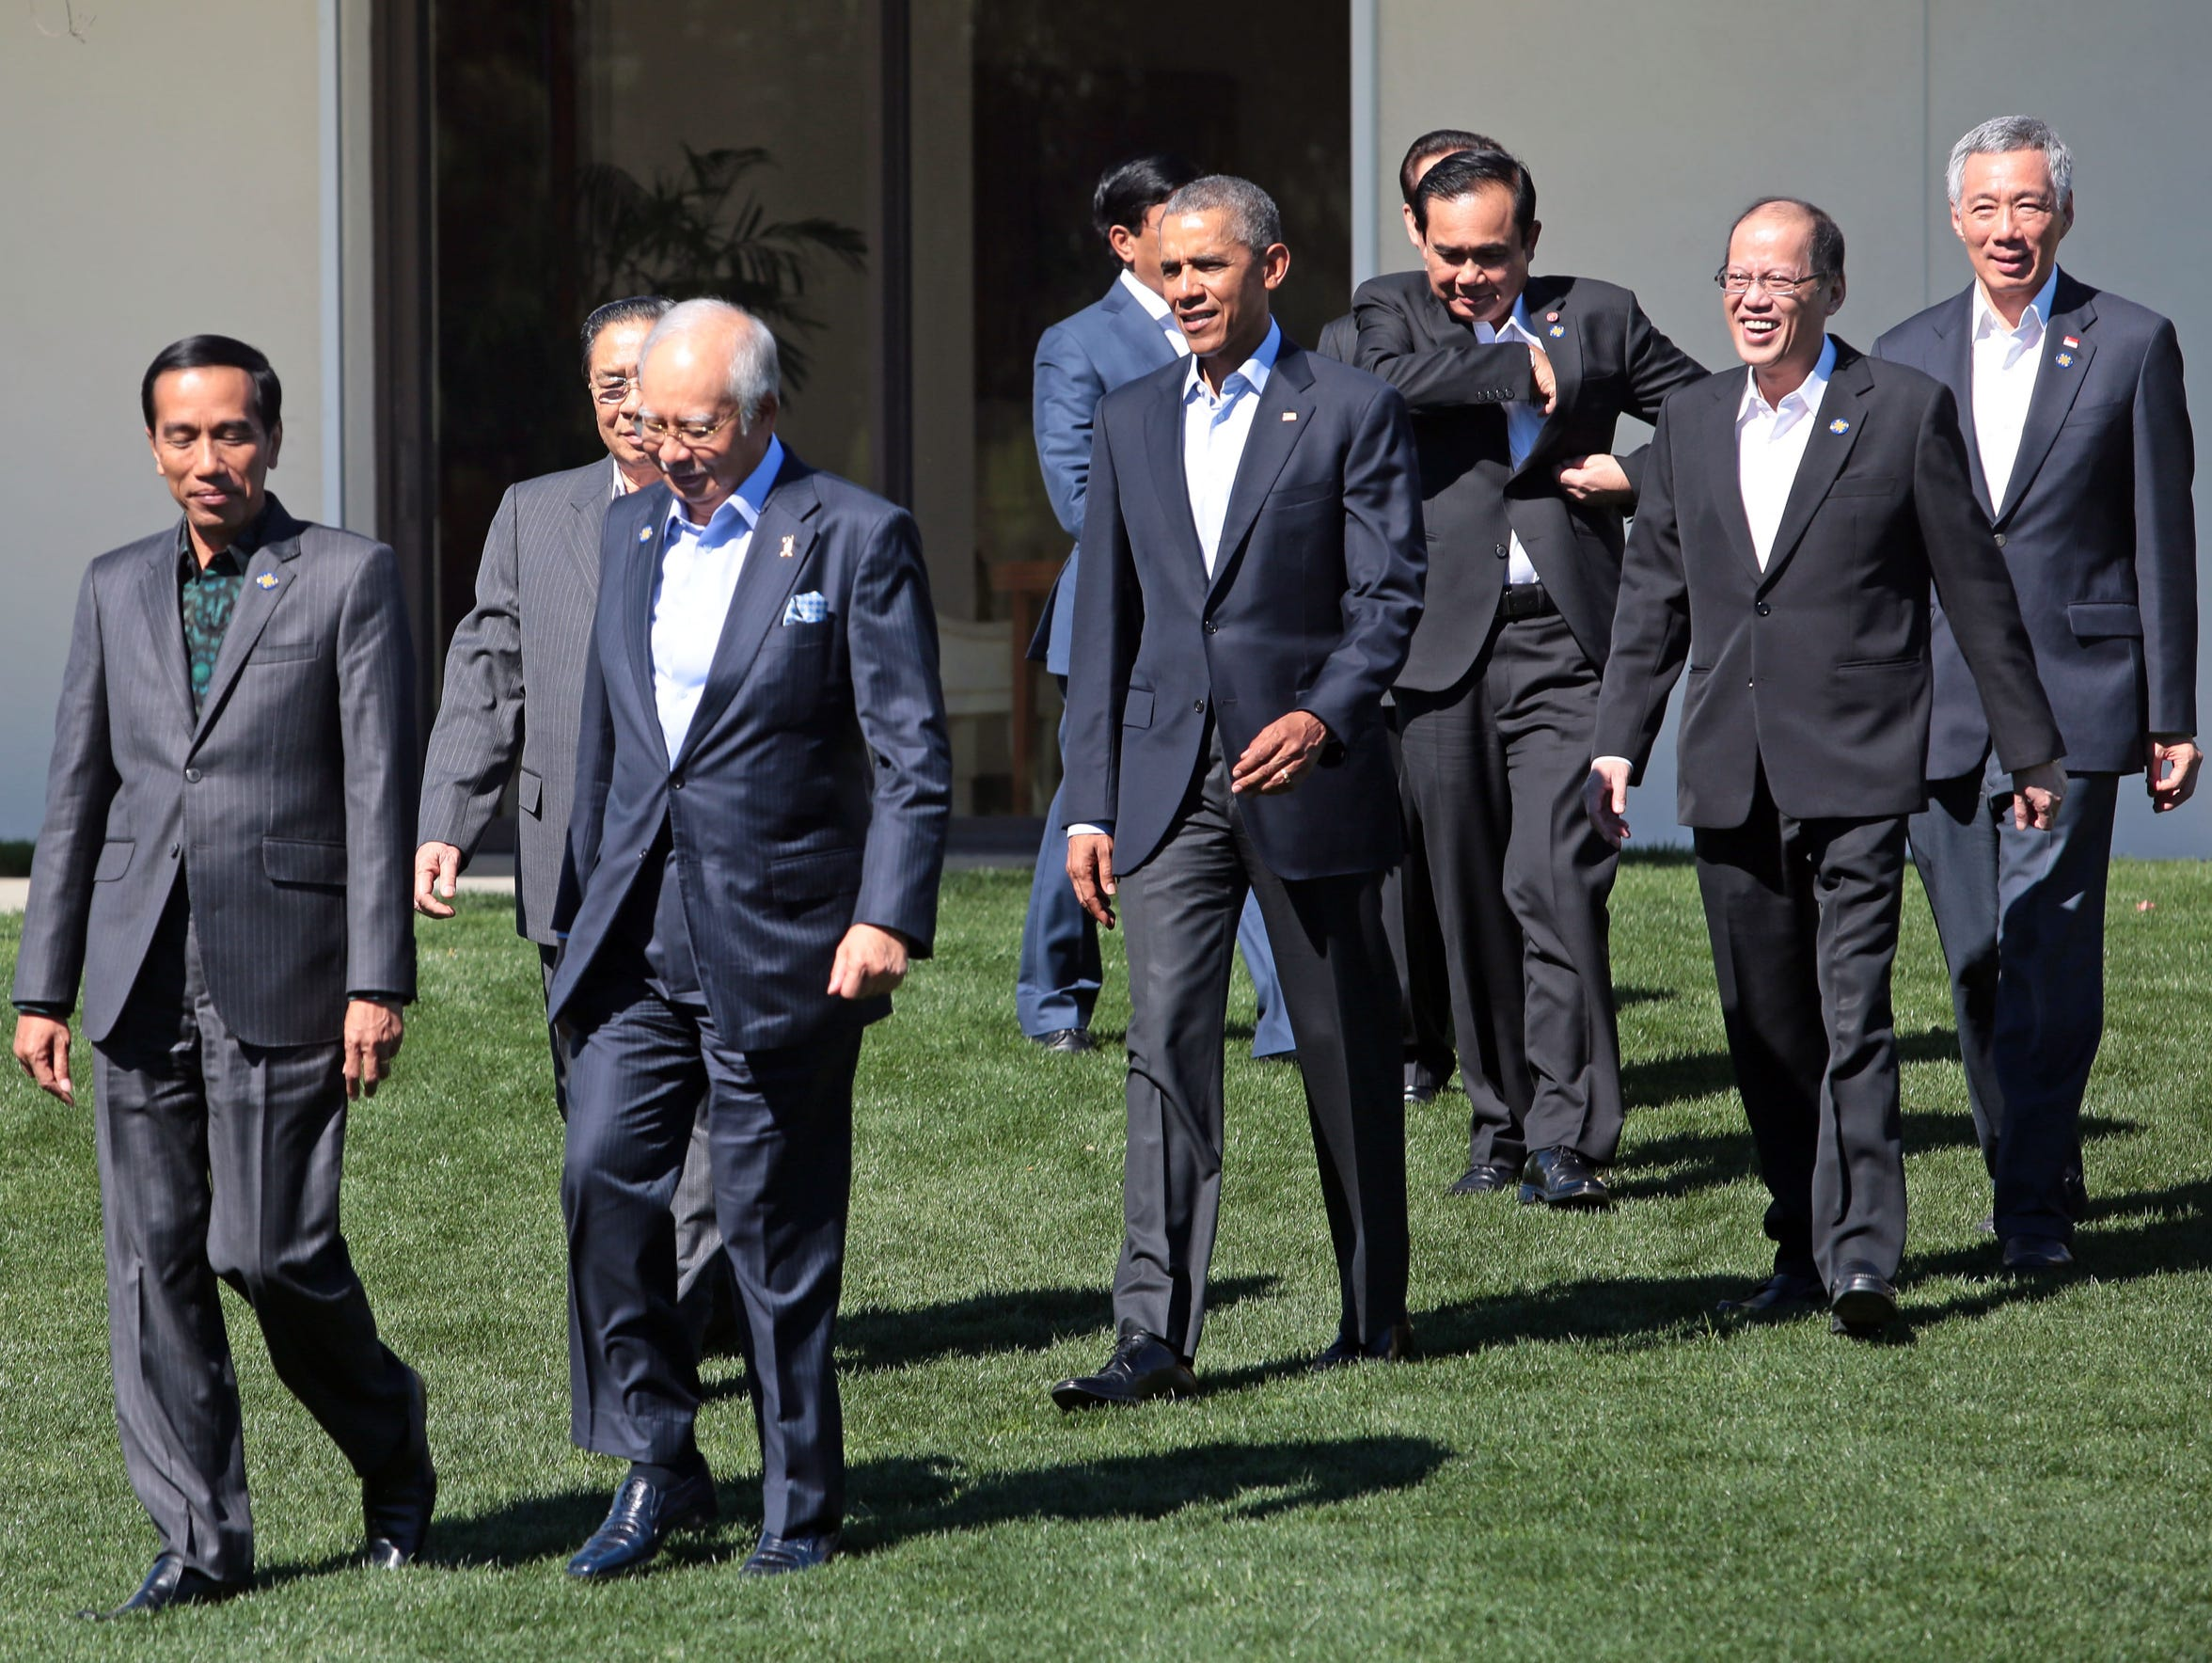 President Barack Obama walks with leaders of ASEAN